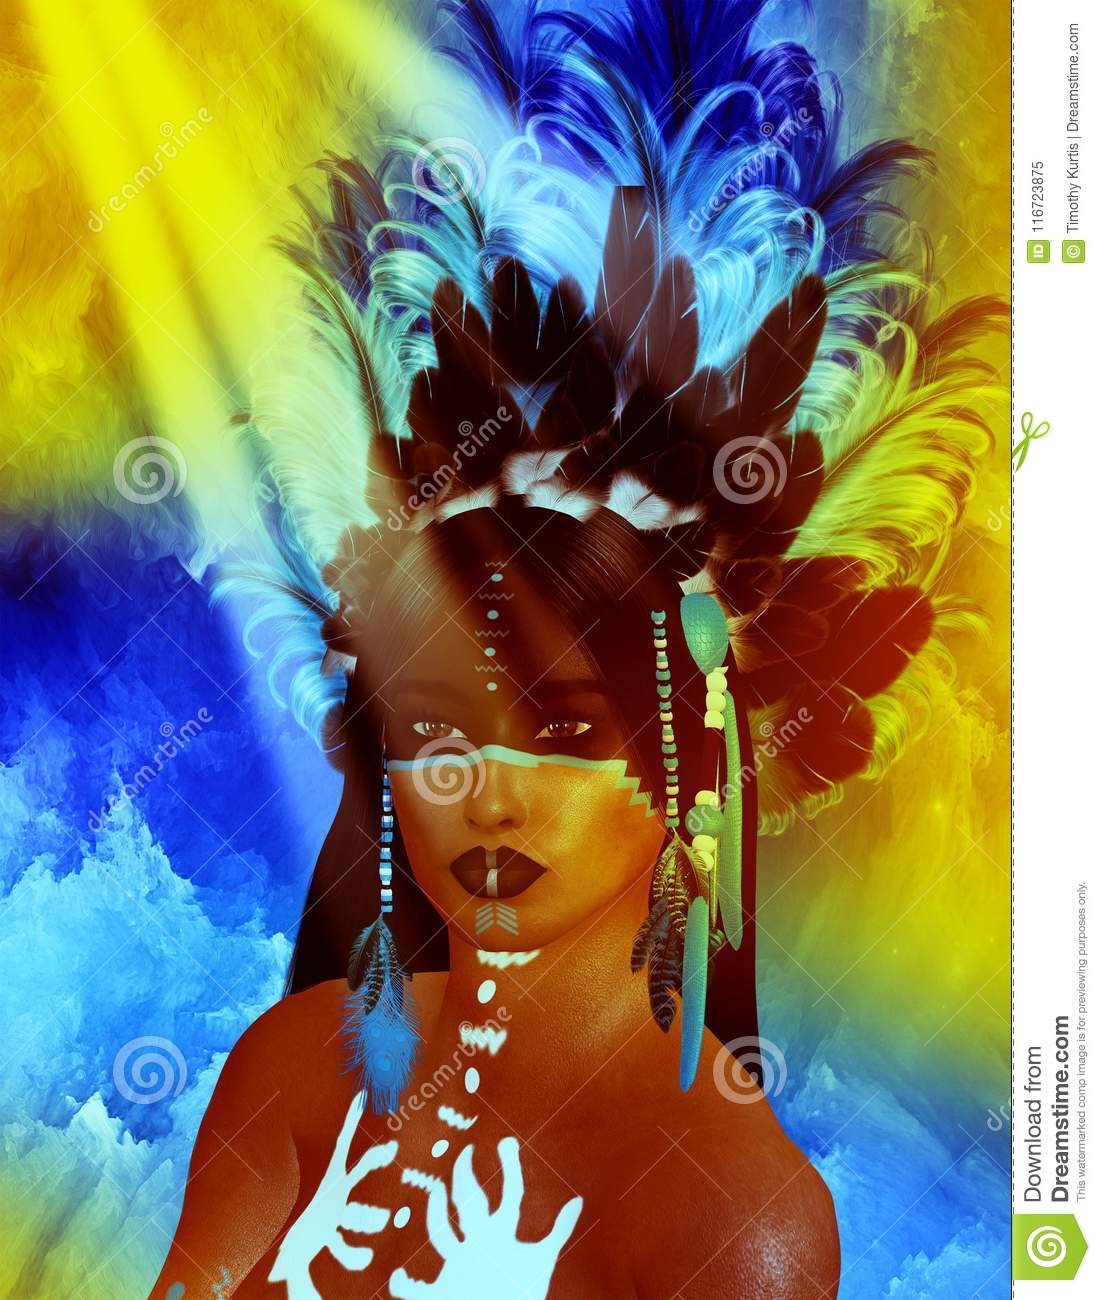 Native American Indian female Beauty, sunset background.